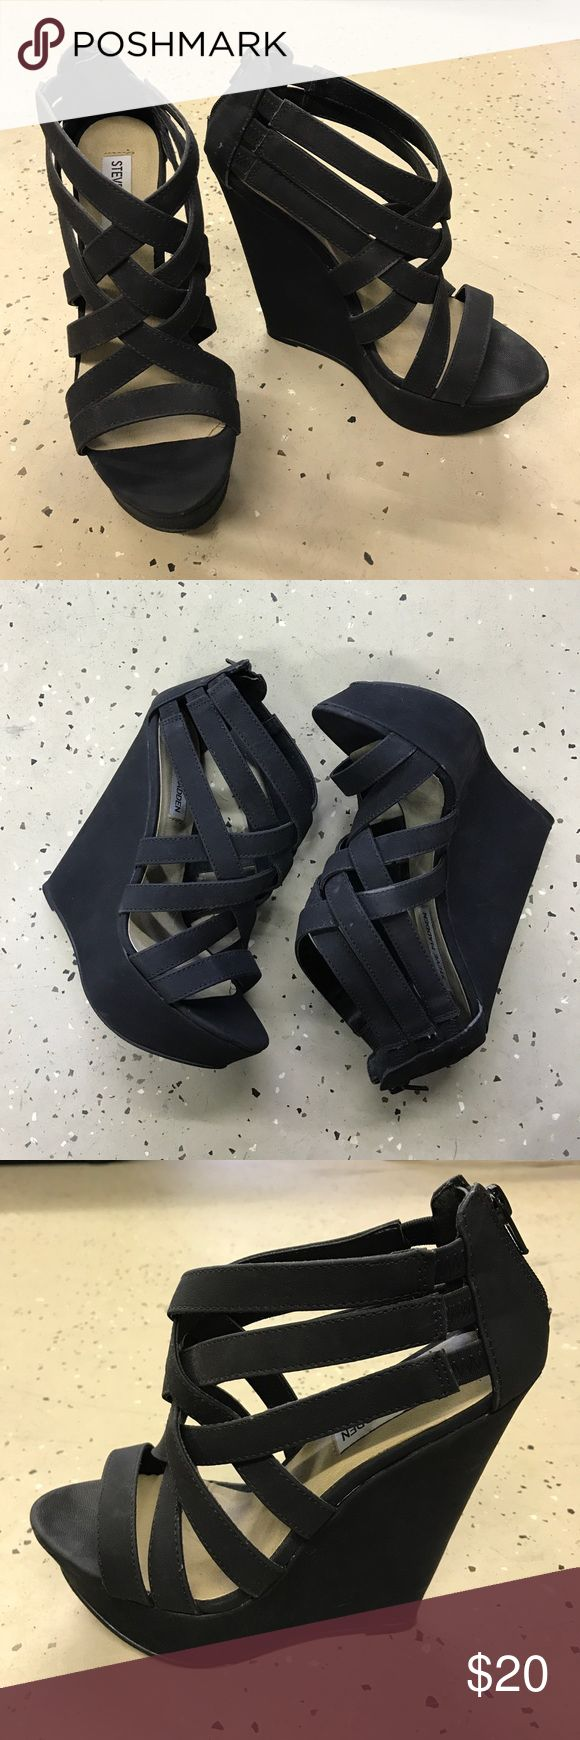 Steve Madden Black Wedges Black Steve Madden wedges. They have been worn a couple of times and they have a few marks on them. Steve Madden Shoes Wedges